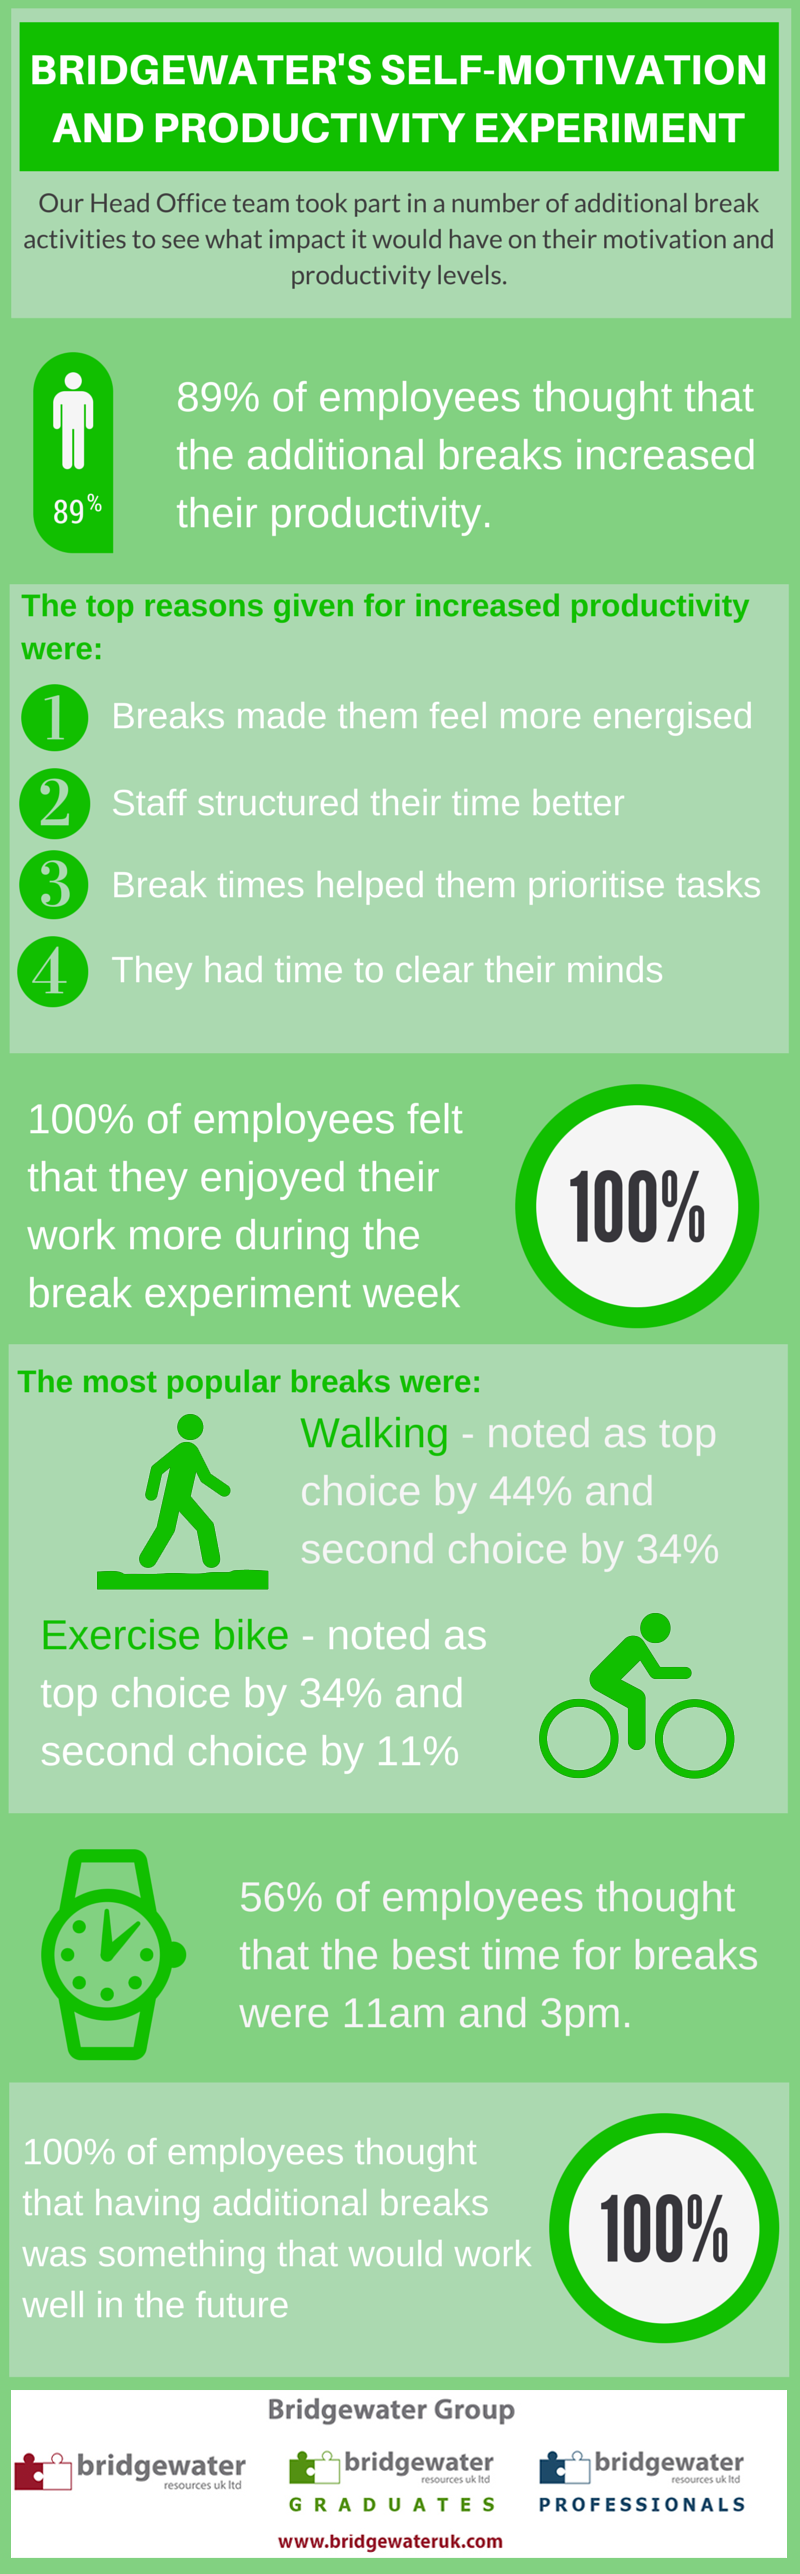 self-motivation experiment infographic